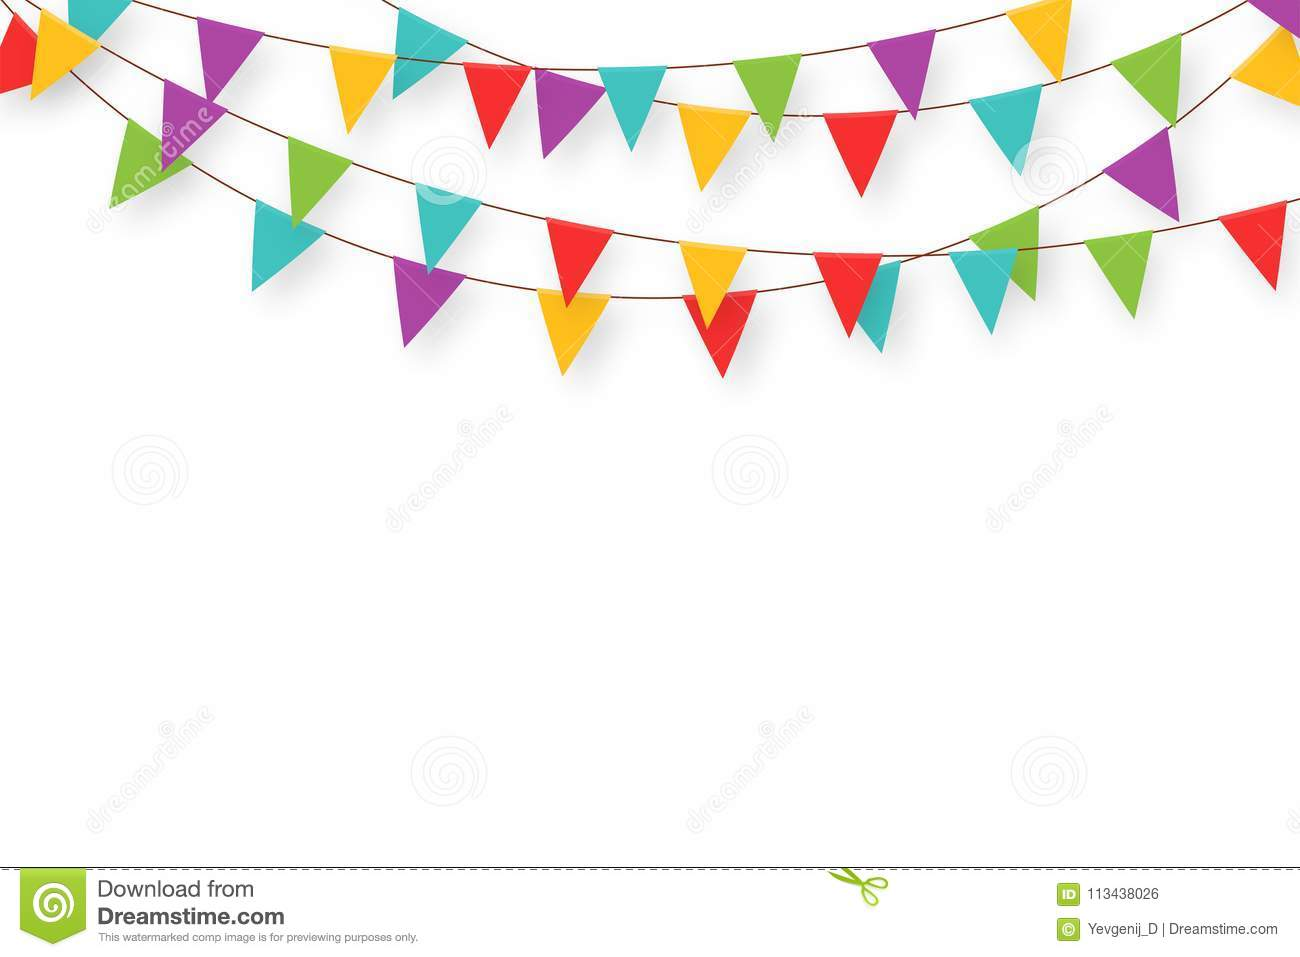 Carnival Garland With Flags. Decorative Colorful Party Pennants For.